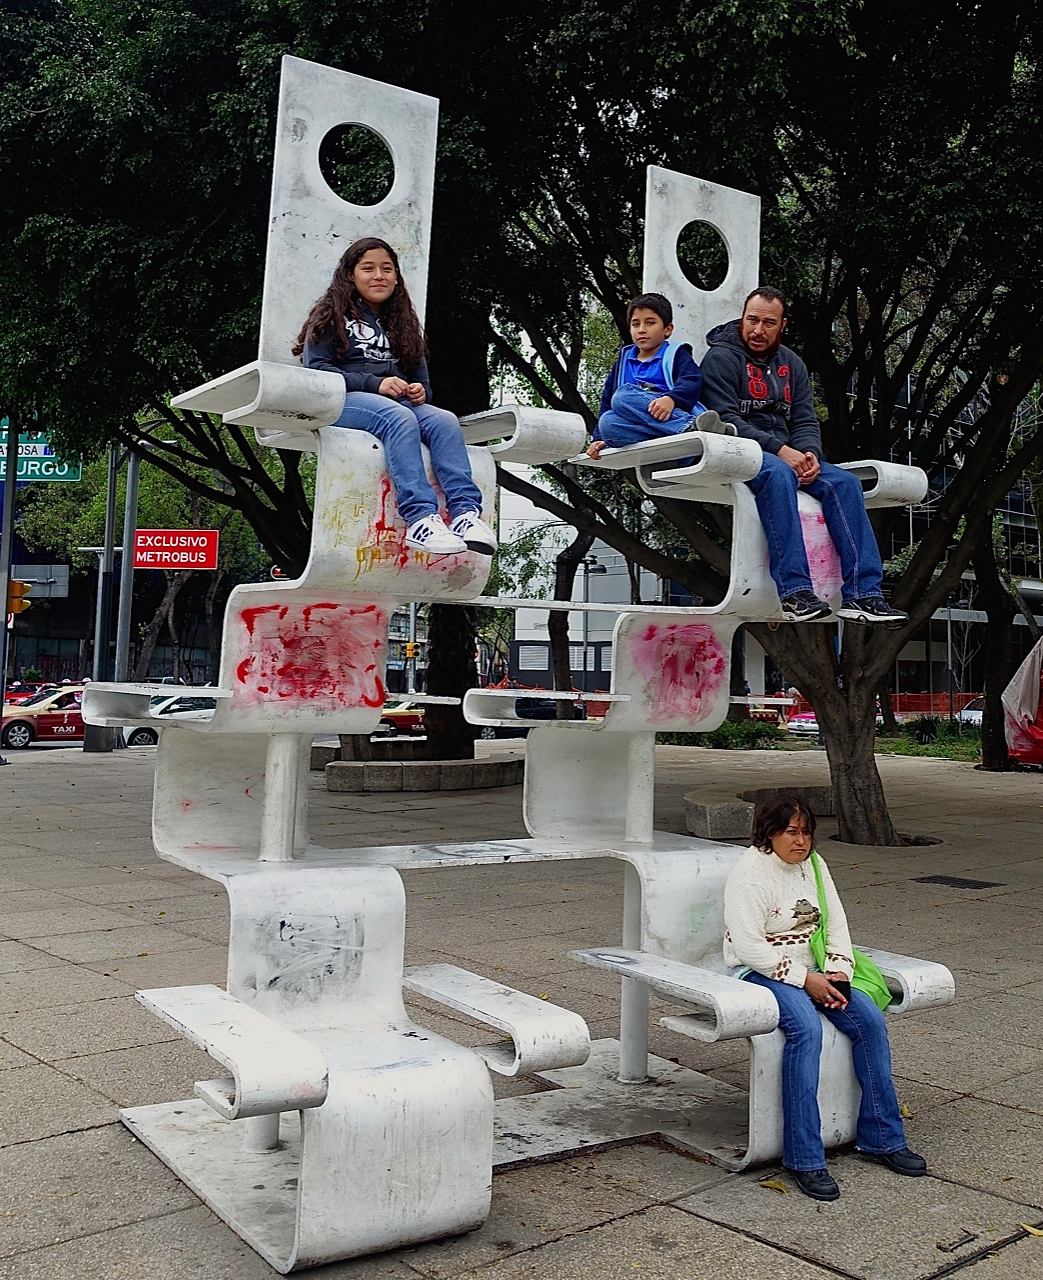 Benches come in all shapes and sizes in Mexico City.  One of the things we observed early were the number of families who love to hang out together in their public spaces.